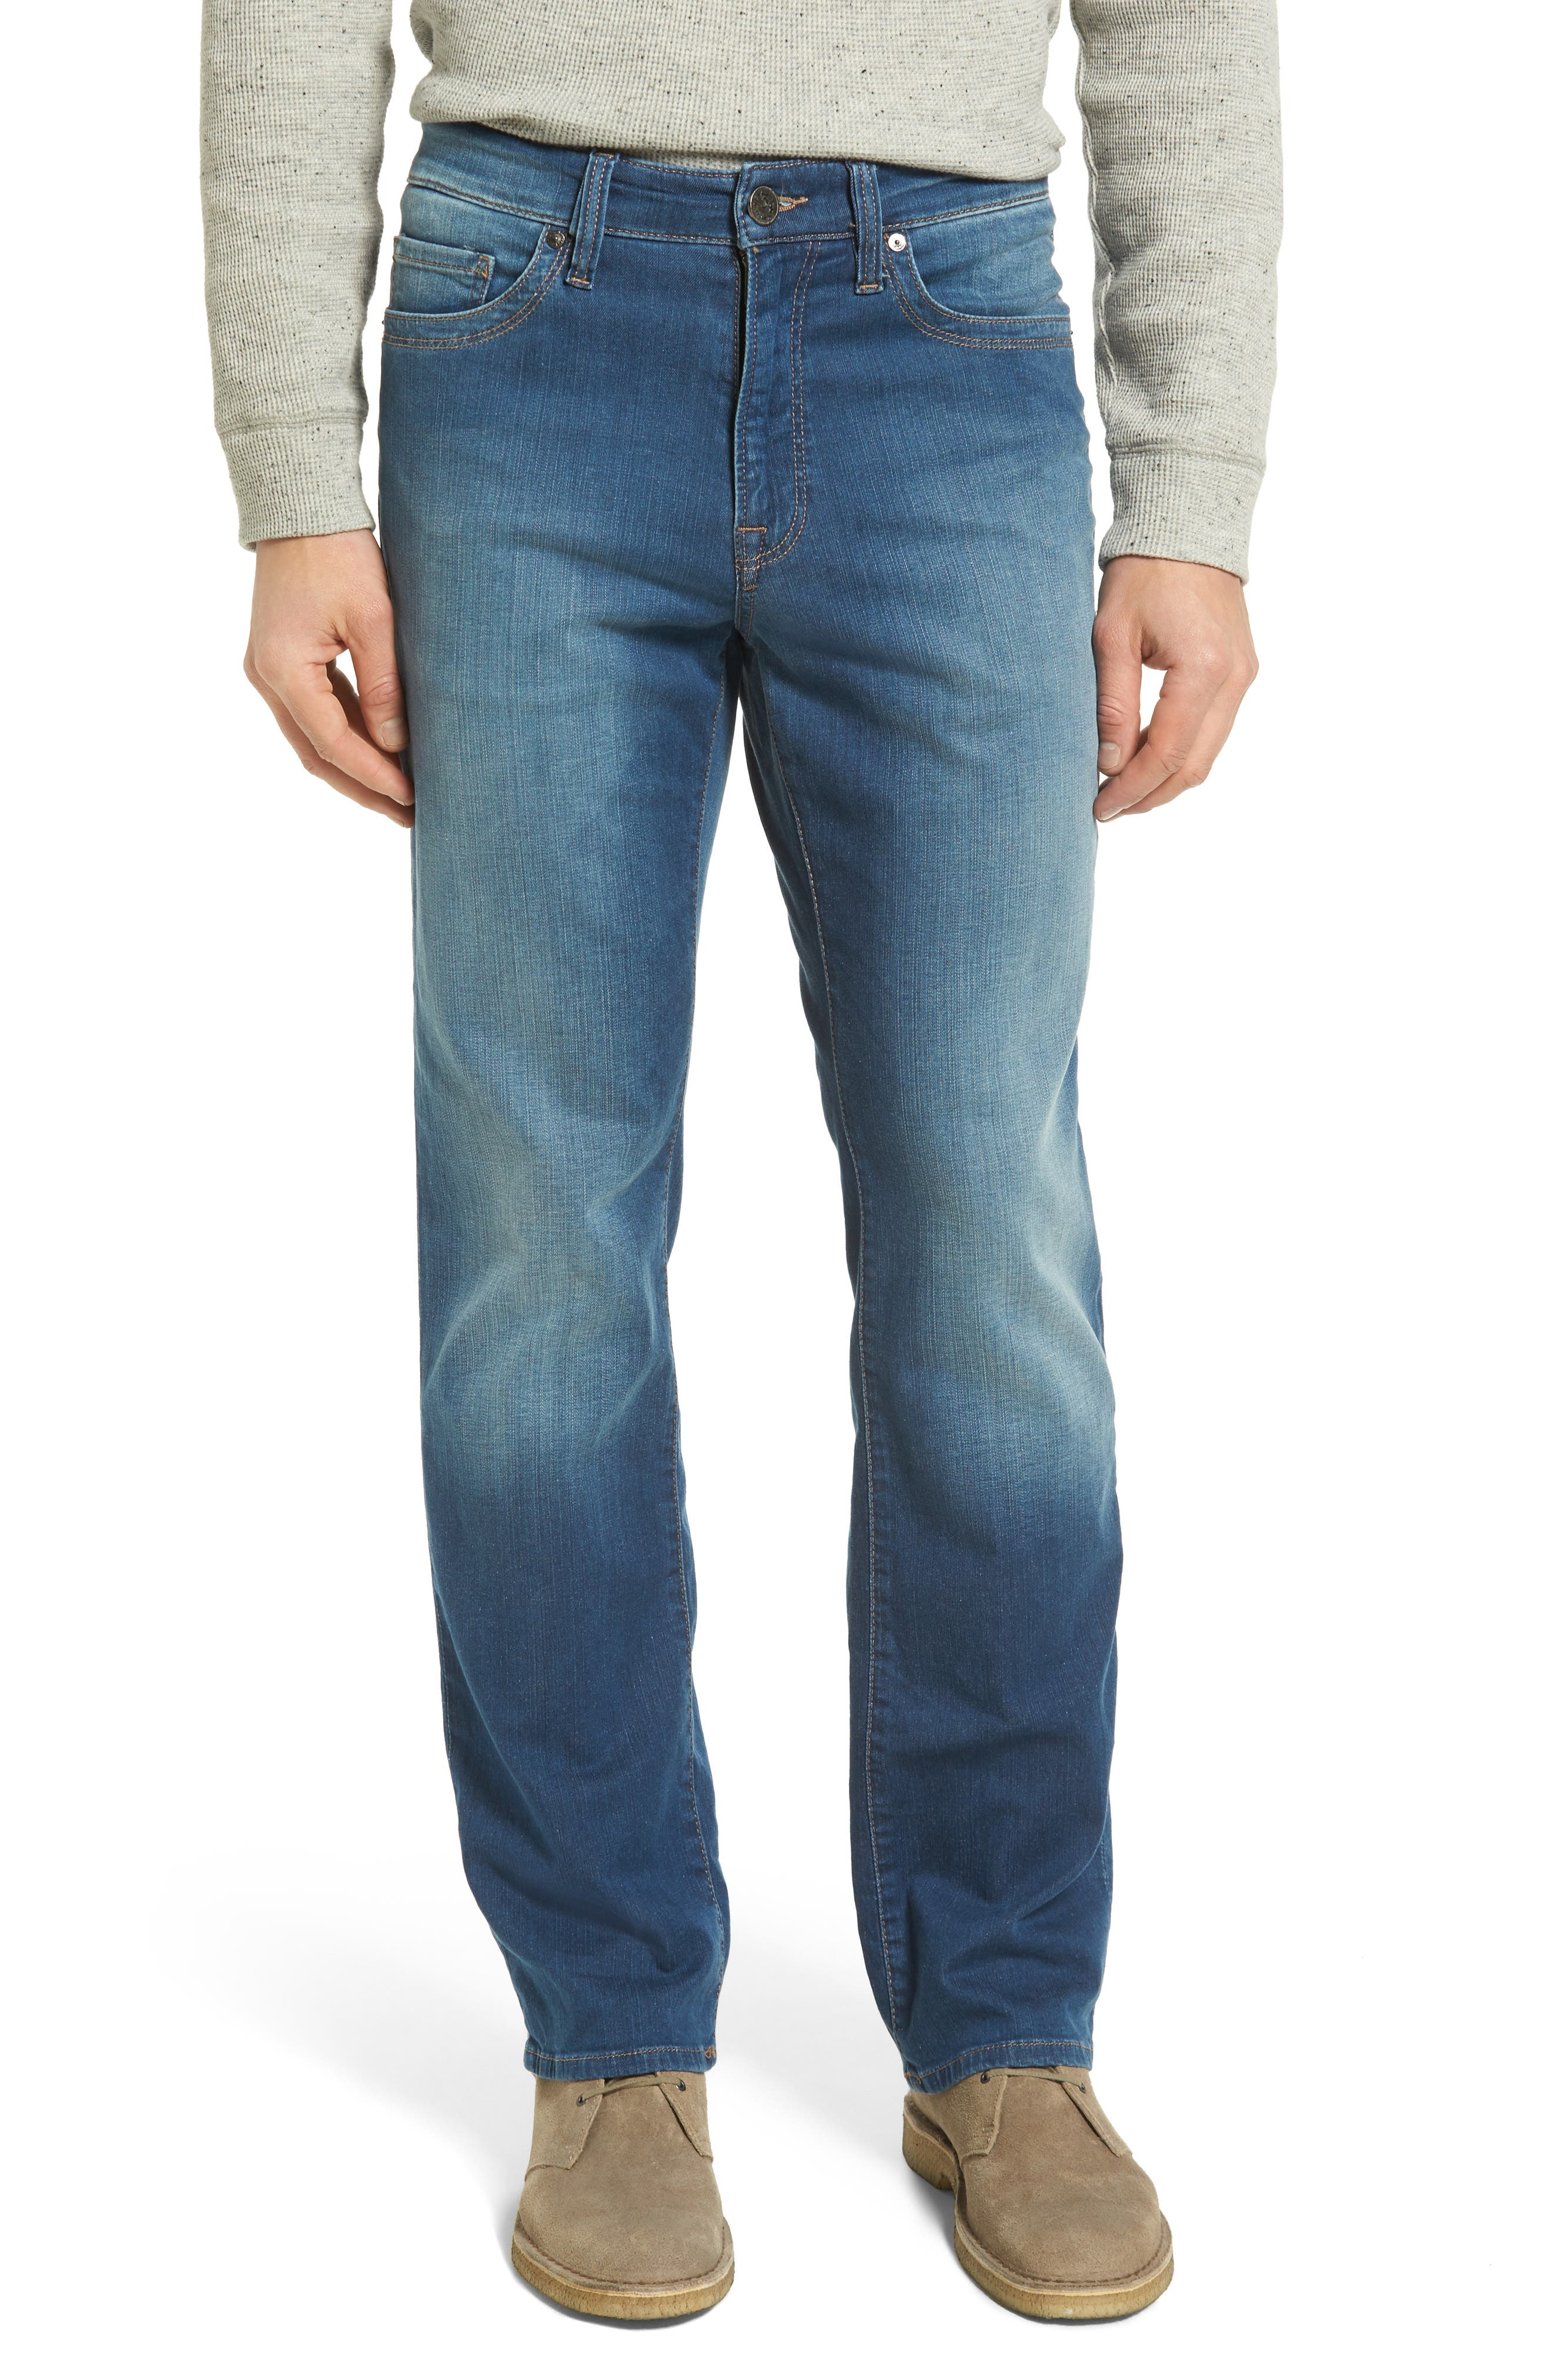 34 HERITAGE 'Charisma' Classic Relaxed Fit Jeans, Main, color, MID CASHMERE